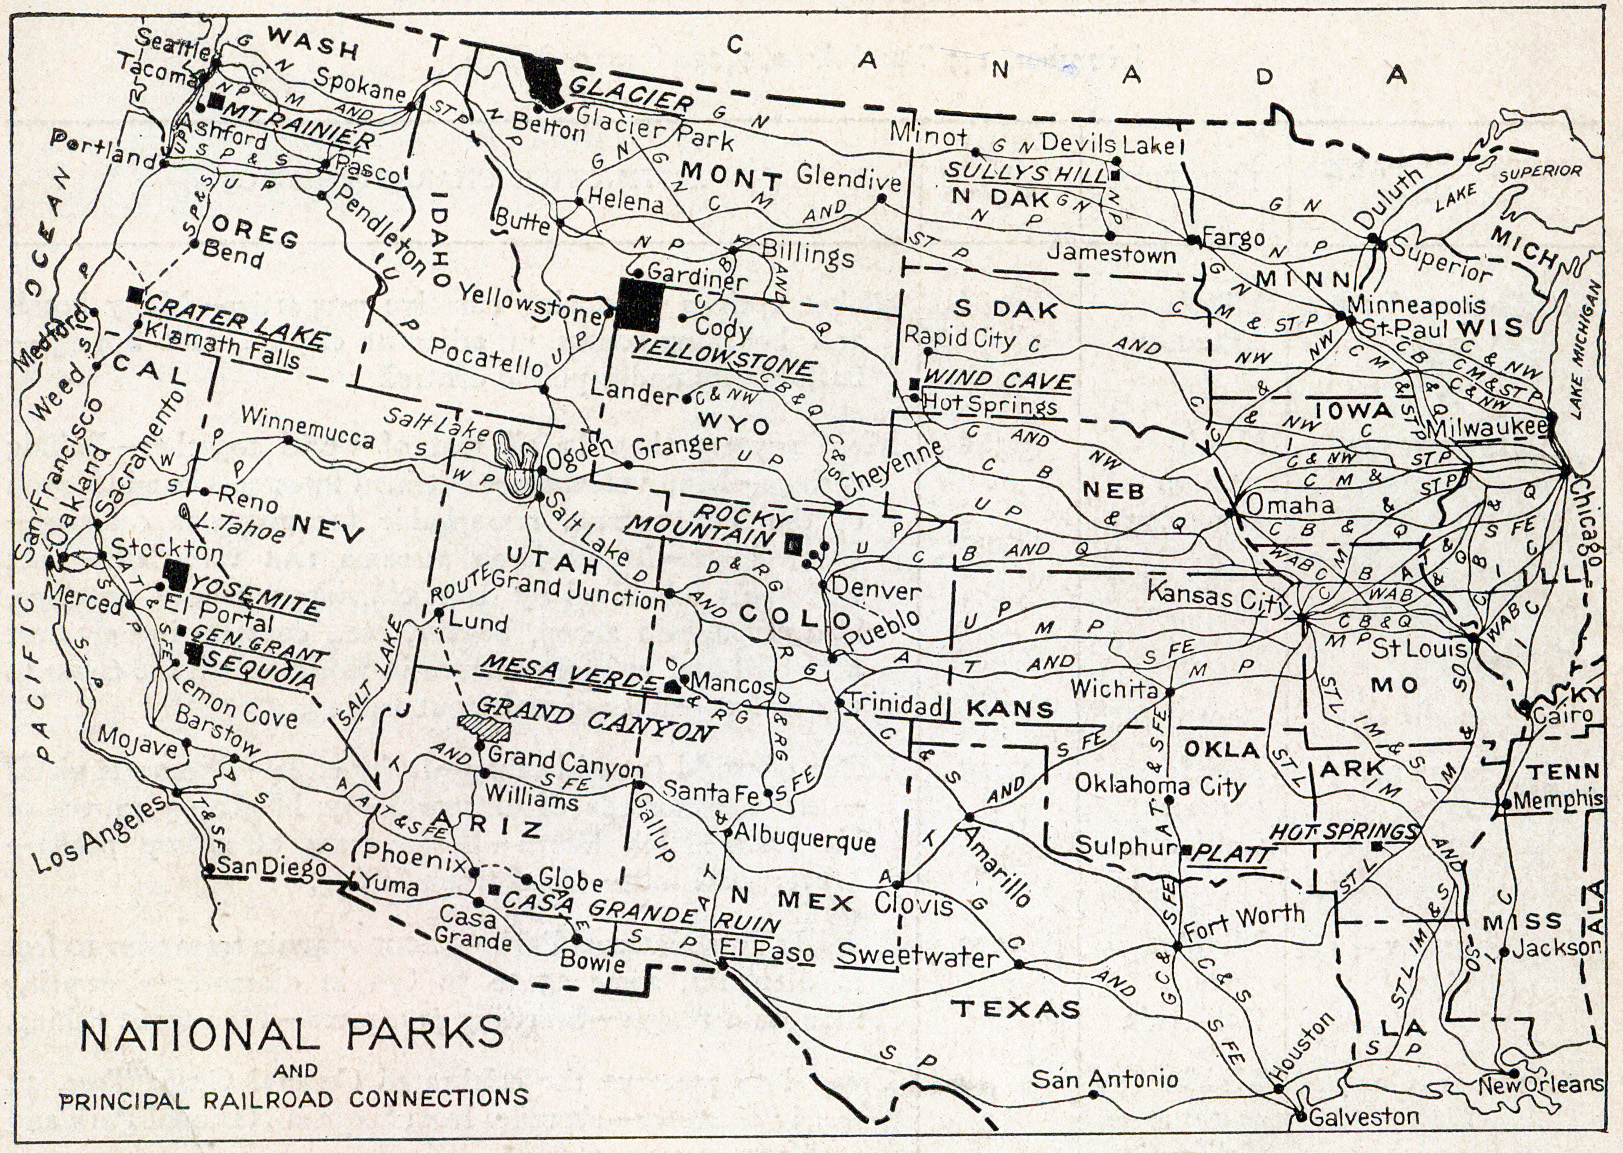 In 1916, a portfolio of nine major parks was published to generate interest. Printed on each brochure was a map showing the parks and principal railroad connections.